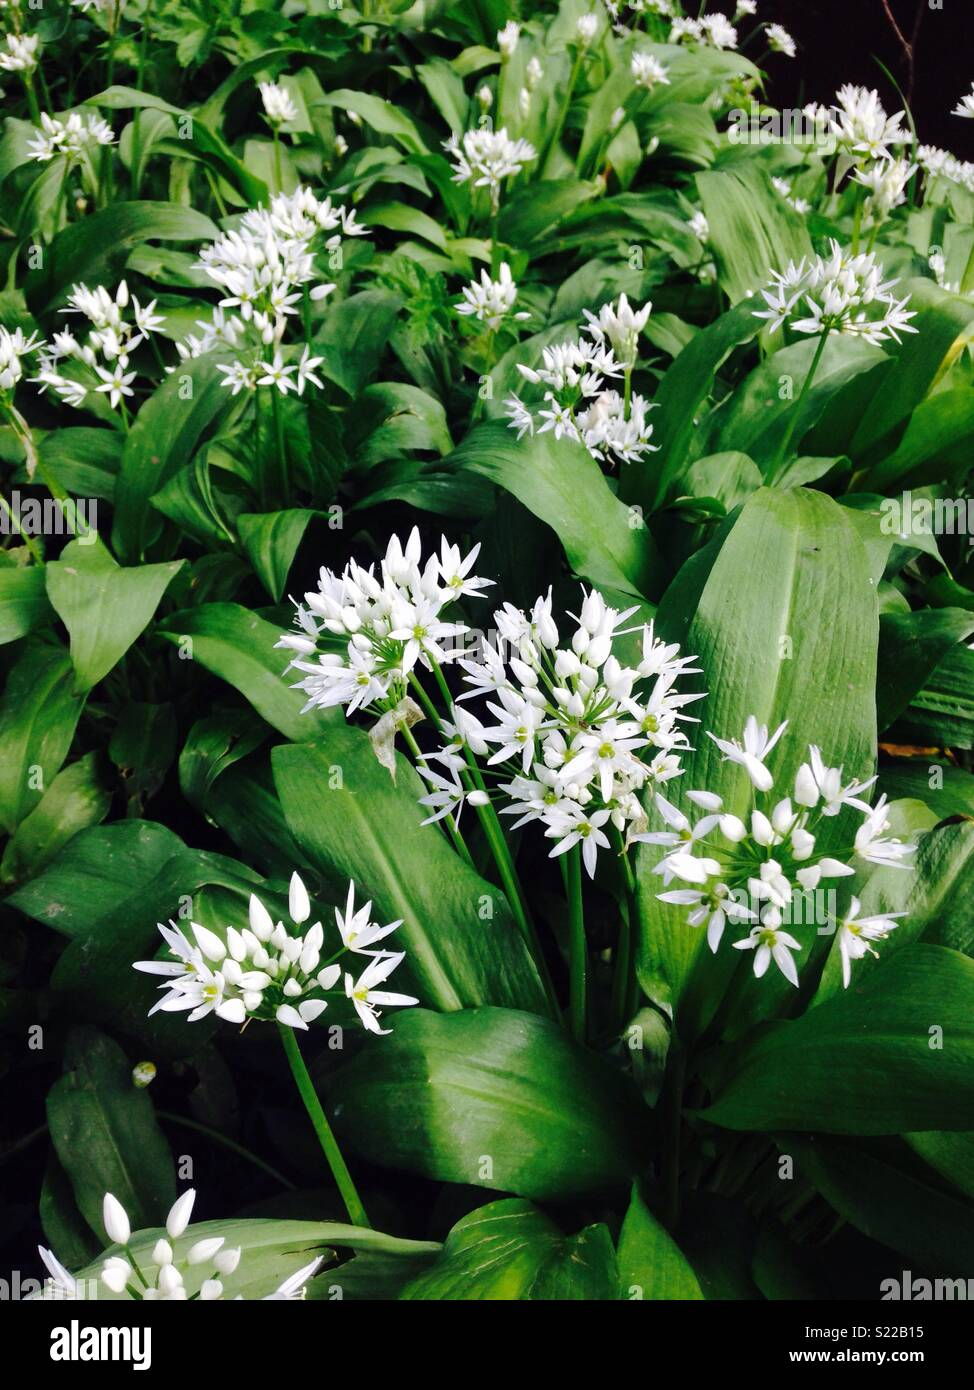 Wild Garlic in bloom - Stock Image